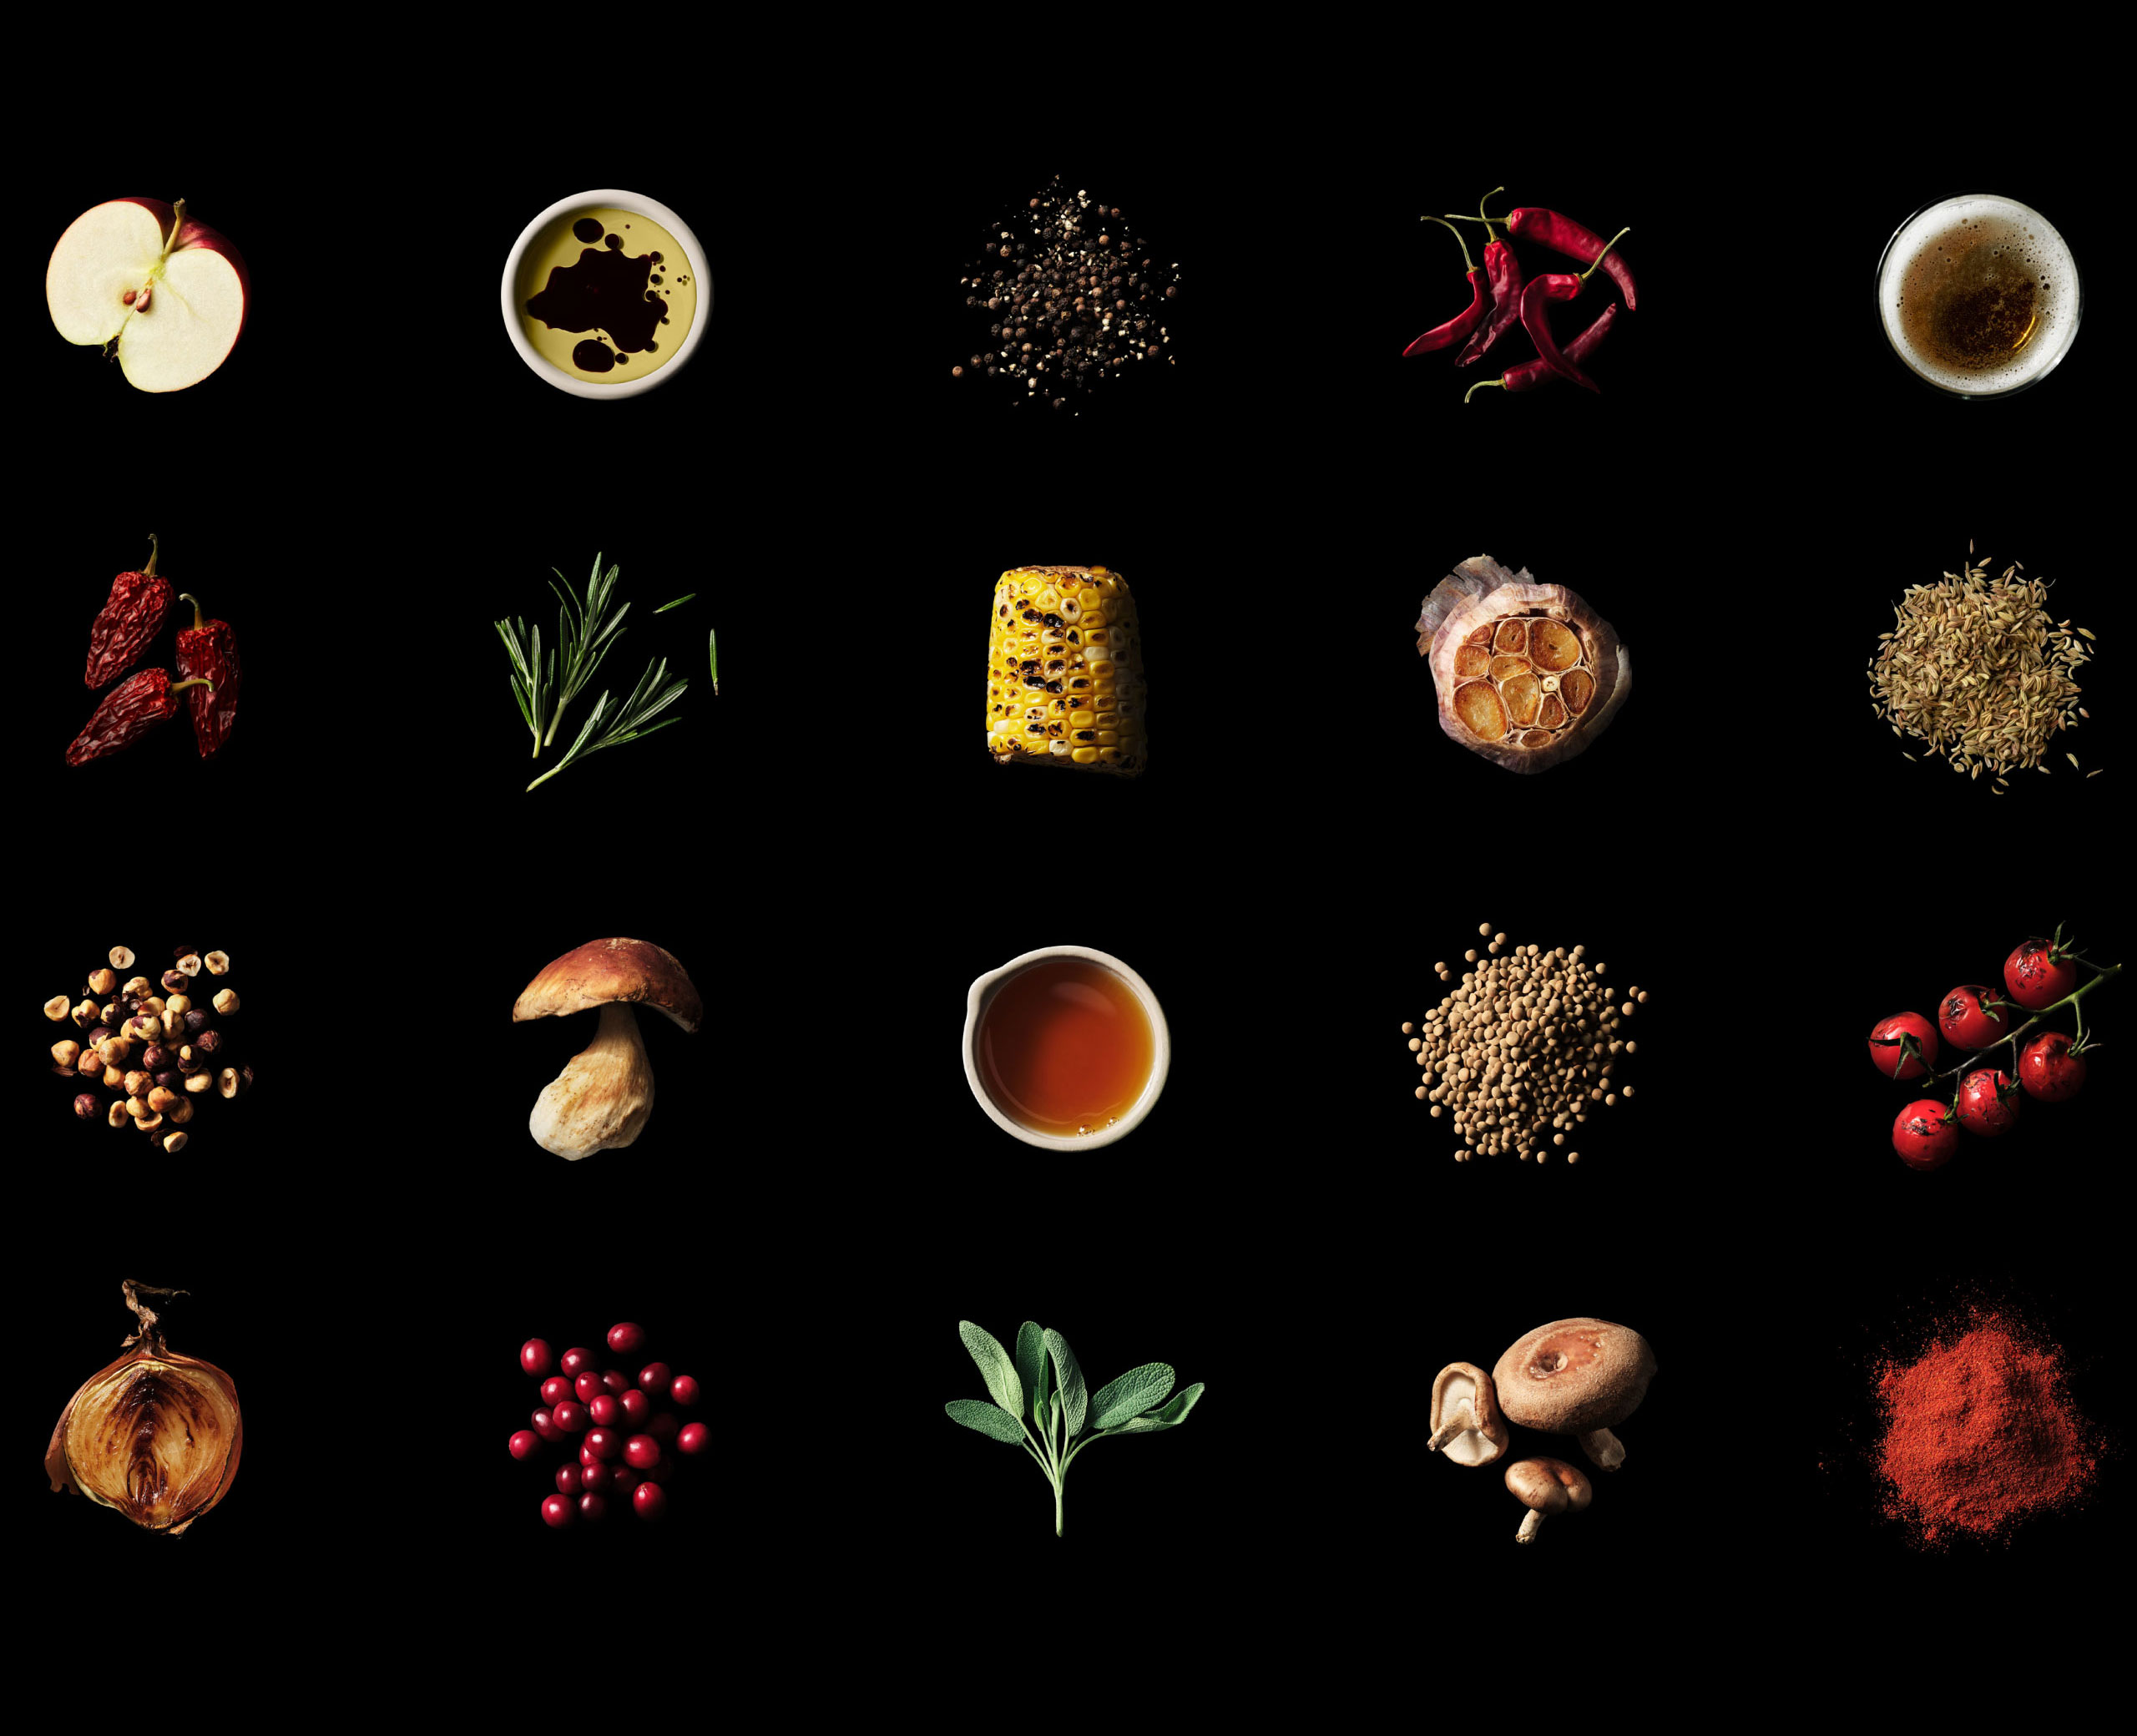 INGREDIENT PHOTOGRAPHY